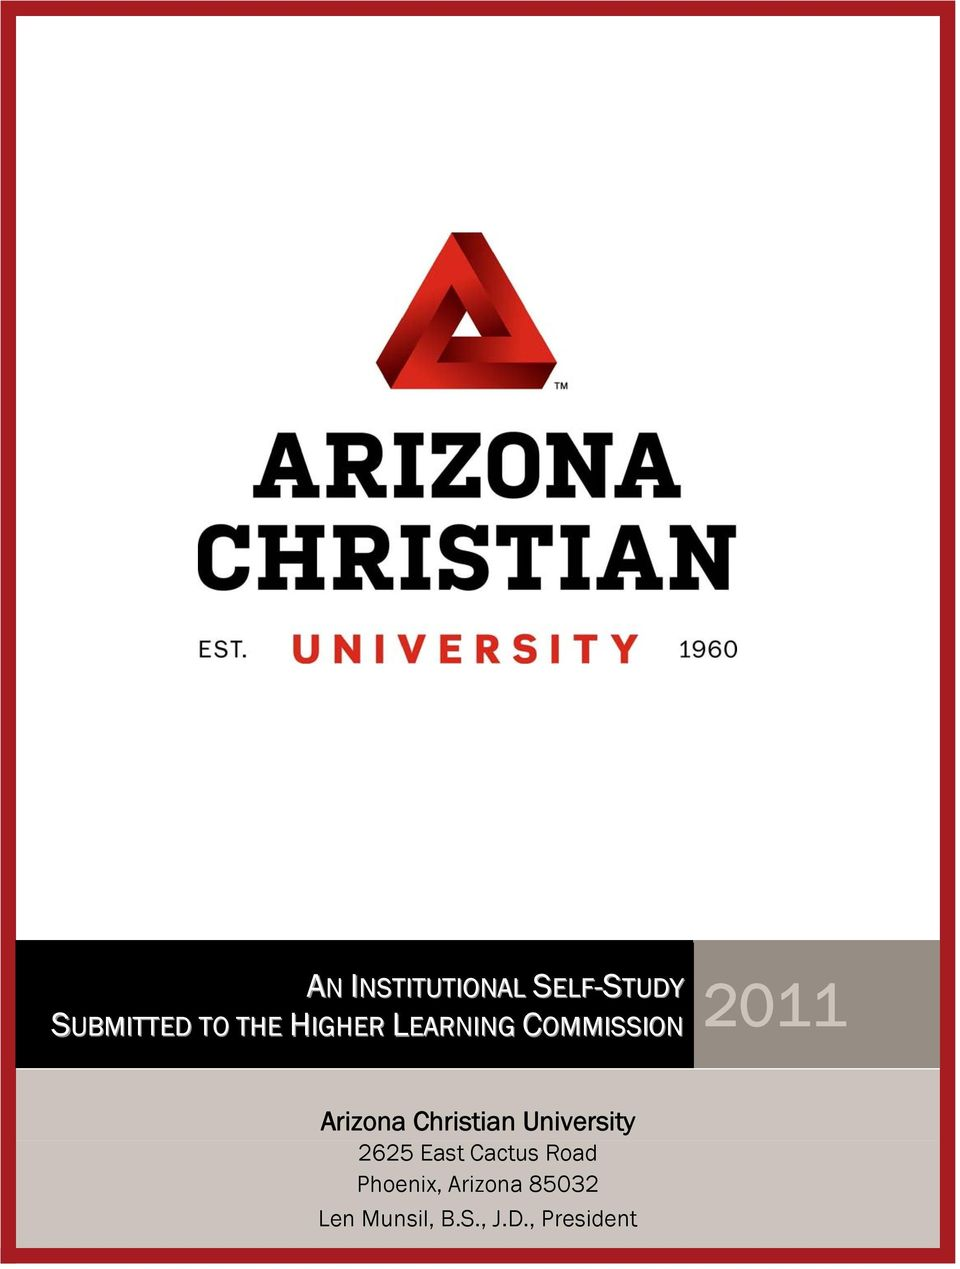 Christian University 2625 East Cactus Road